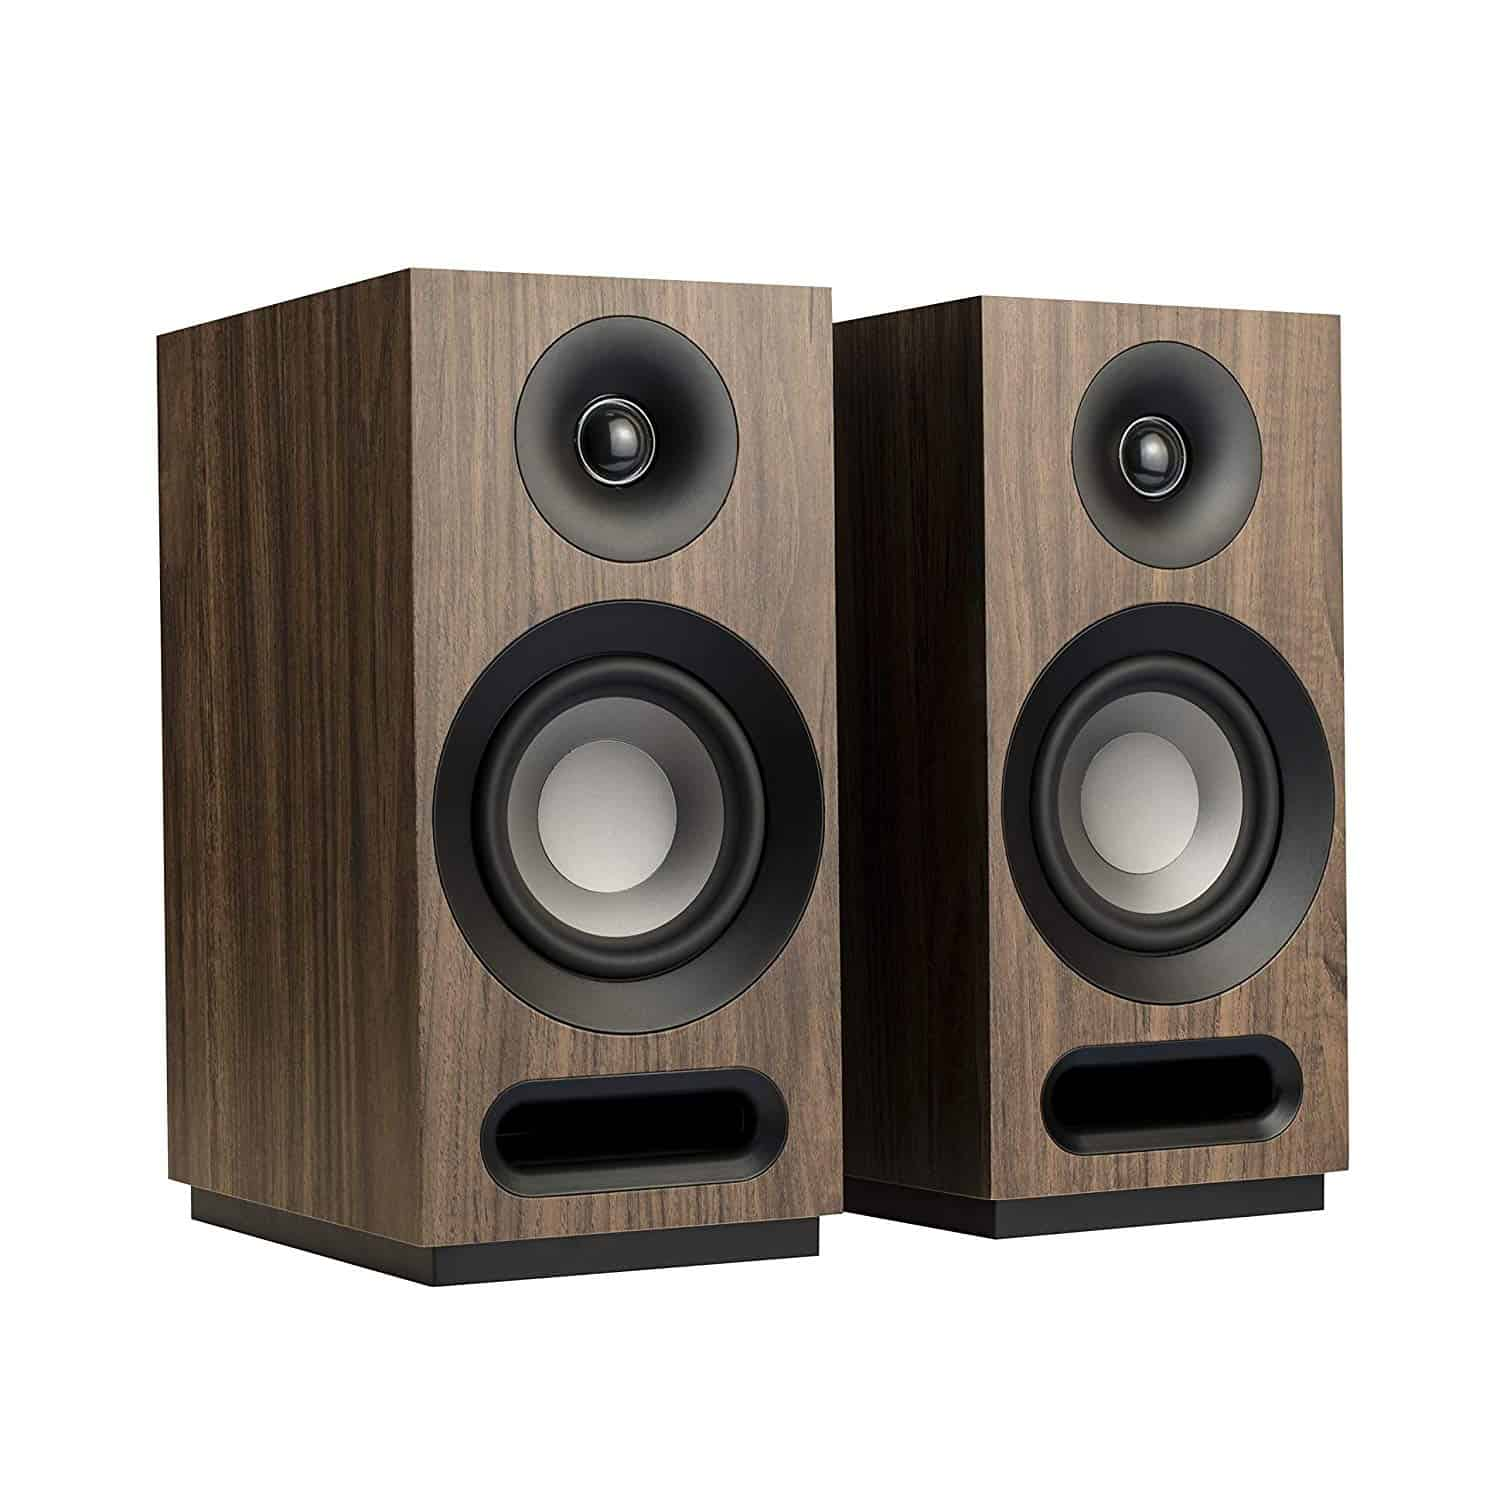 Jamo Studio 803 Bookshelf Speakers